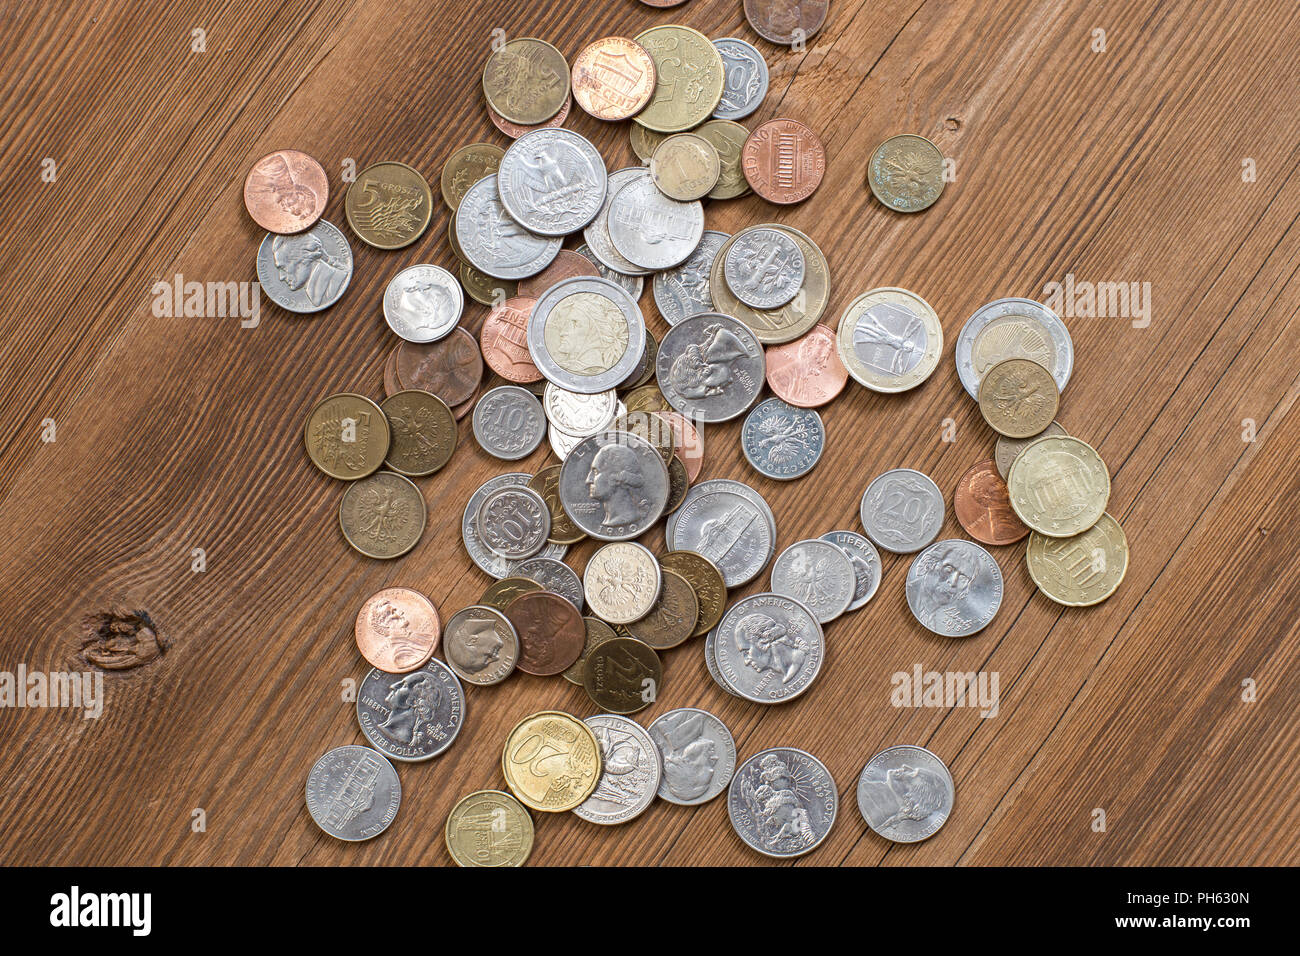 Coins on old wooden surface copyspace ready for edit as money themed cover - Stock Image